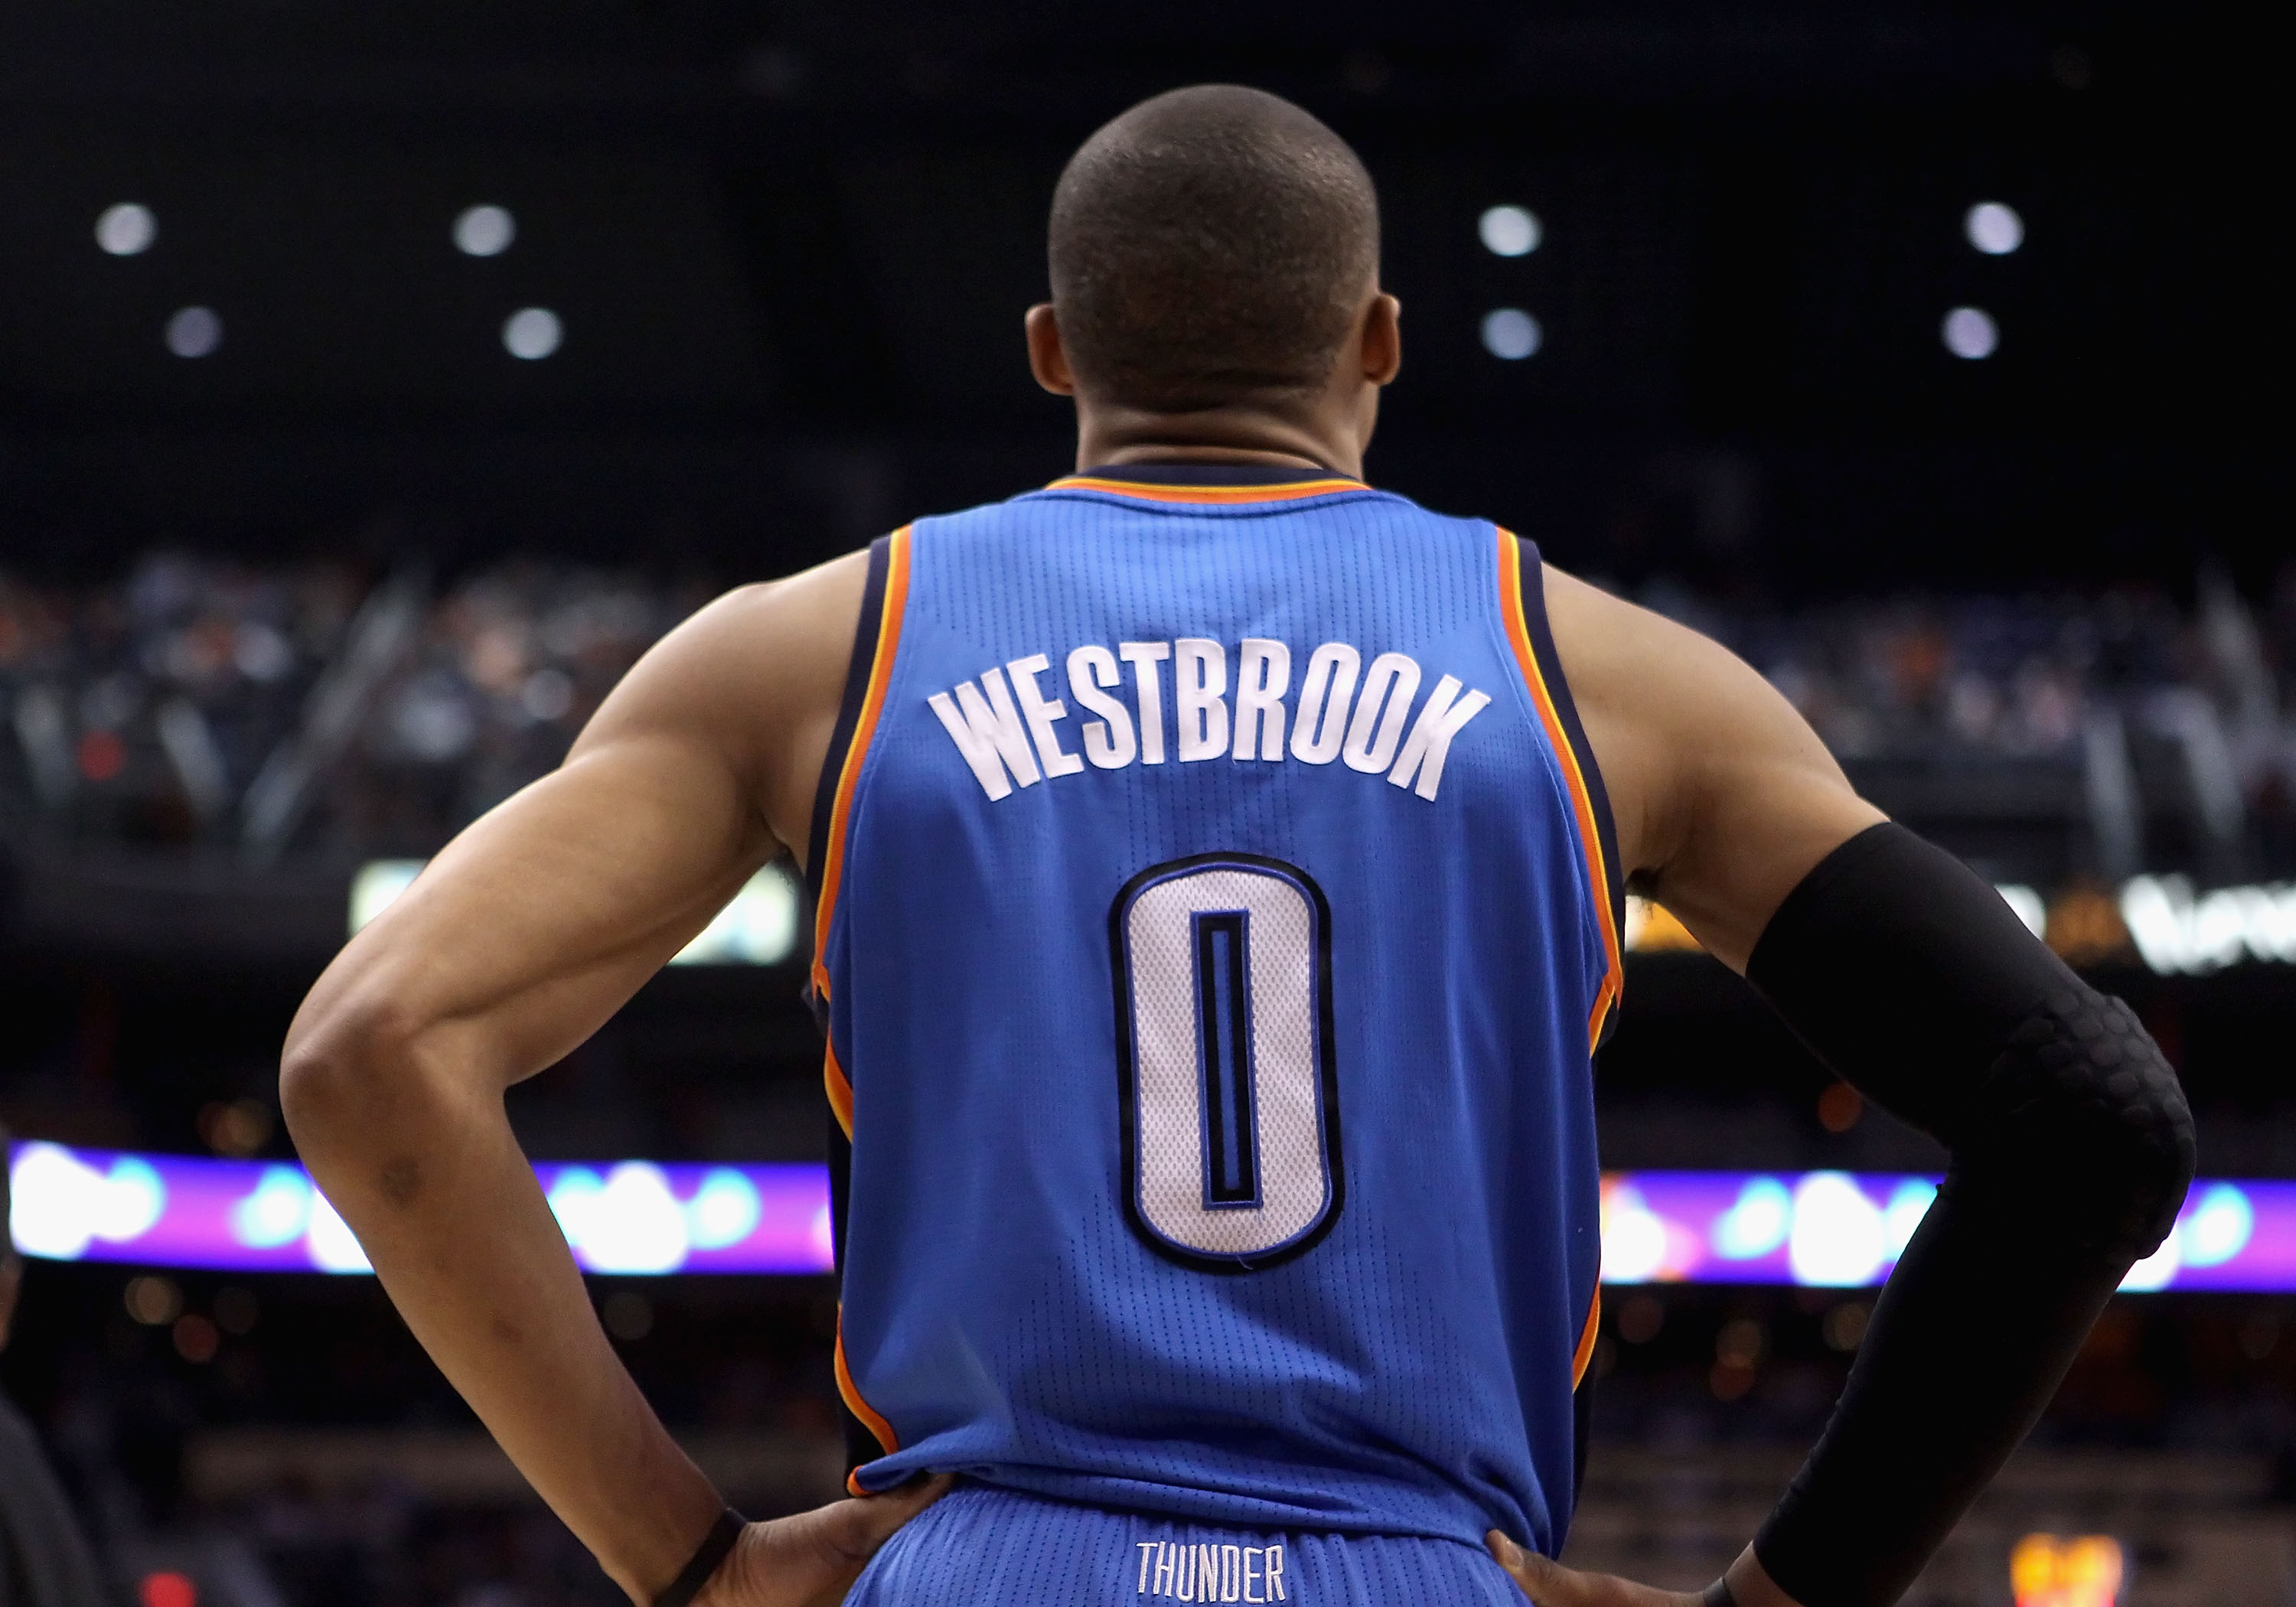 PHOENIX, AZ - MARCH 30:  Russell Westbrook #0 of the Oklahoma City Thunder in action during the NBA game against the Phoenix Suns at US Airways Center on March 30, 2011 in Phoenix, Arizona. The Thunder defeated the Suns 116-98.   NOTE TO USER: User expres